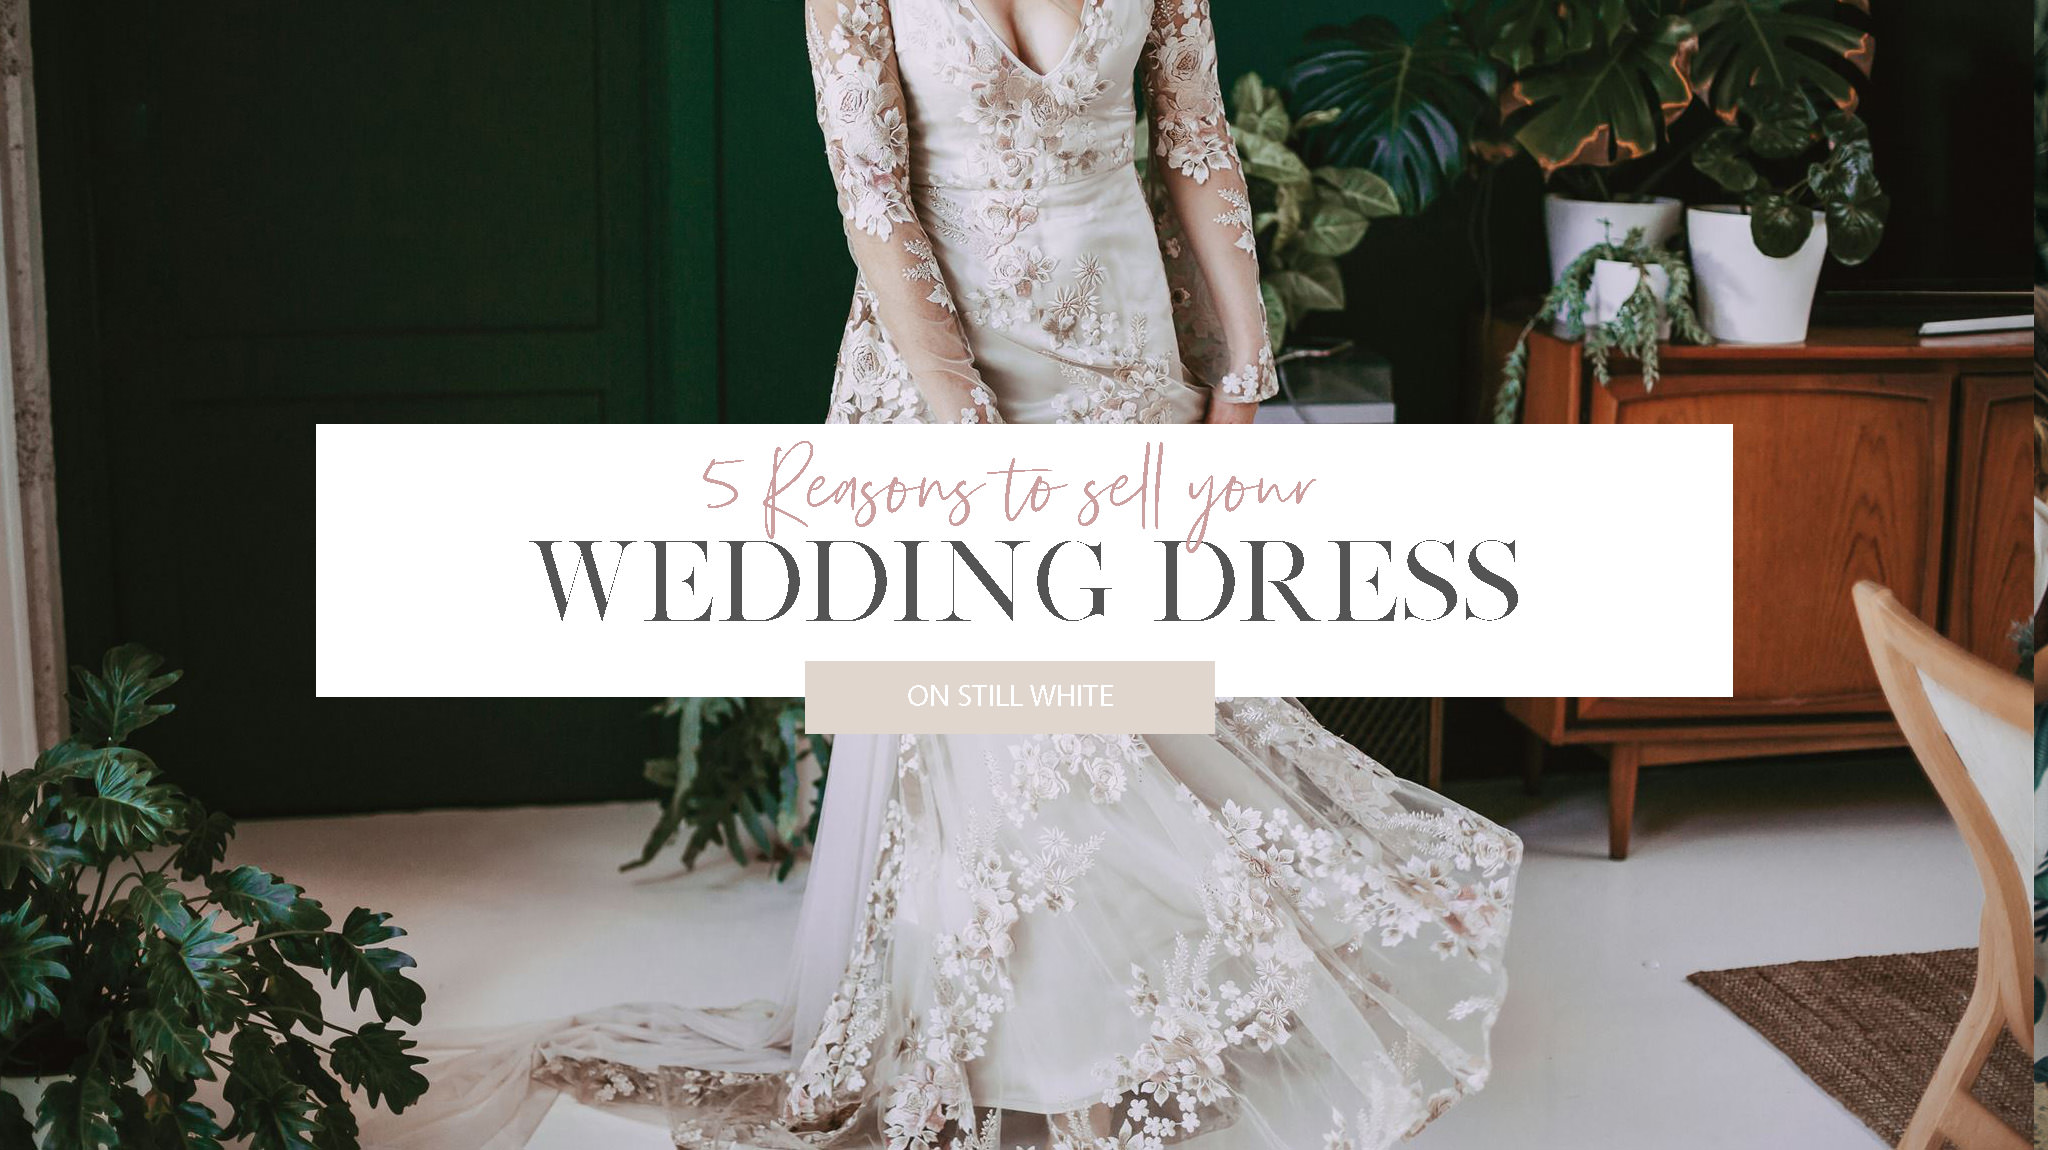 5 Reasons To Sell Your Wedding Dress Kate Drennan Photography